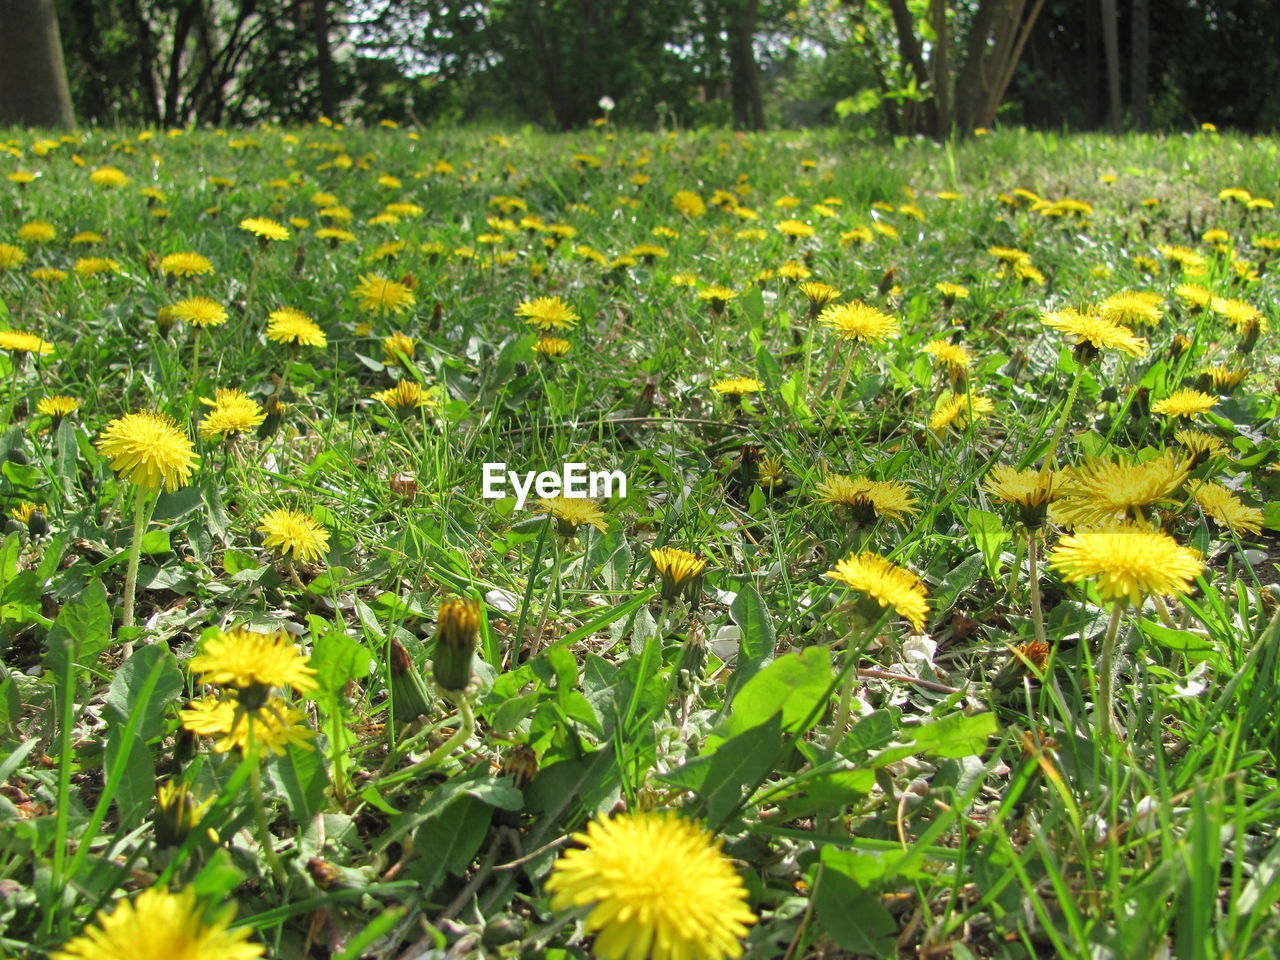 flower, yellow, nature, growth, beauty in nature, freshness, field, outdoors, fragility, plant, day, tranquility, no people, grass, petal, springtime, flower head, blooming, close-up